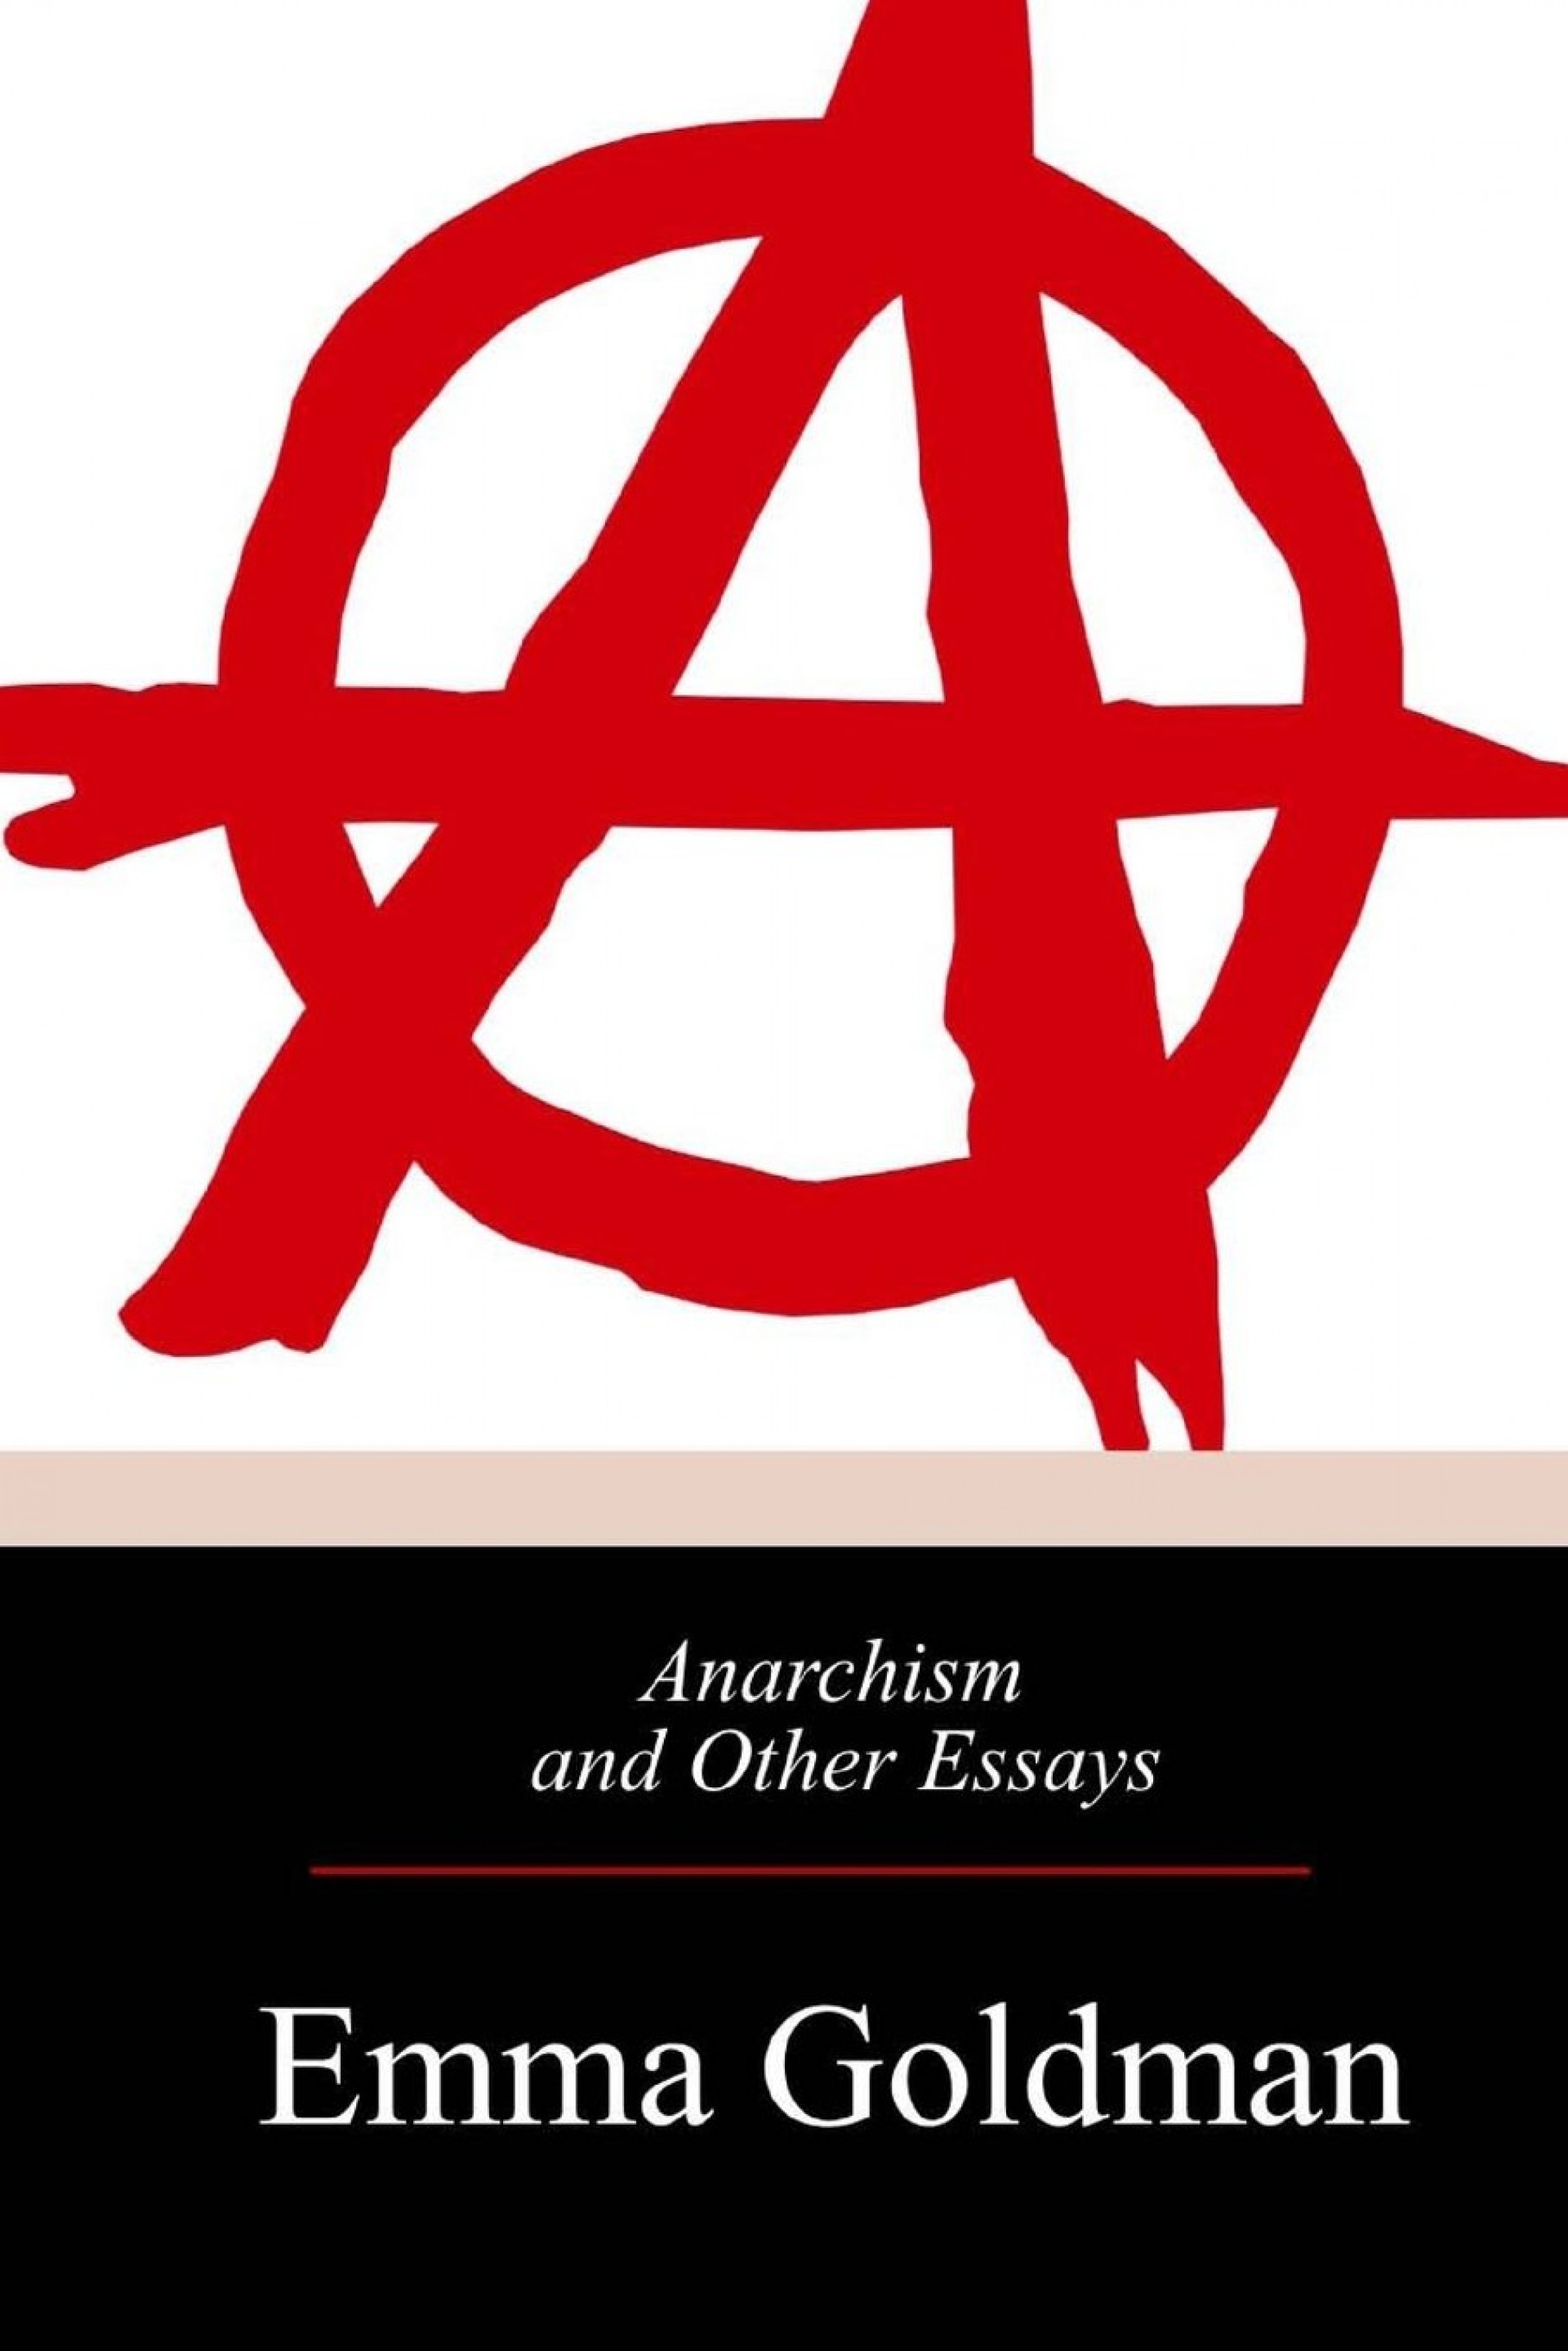 008 610zkhxxiil Essay Example Anarchism And Other Incredible Essays Emma Goldman Summary Mla Citation 1920